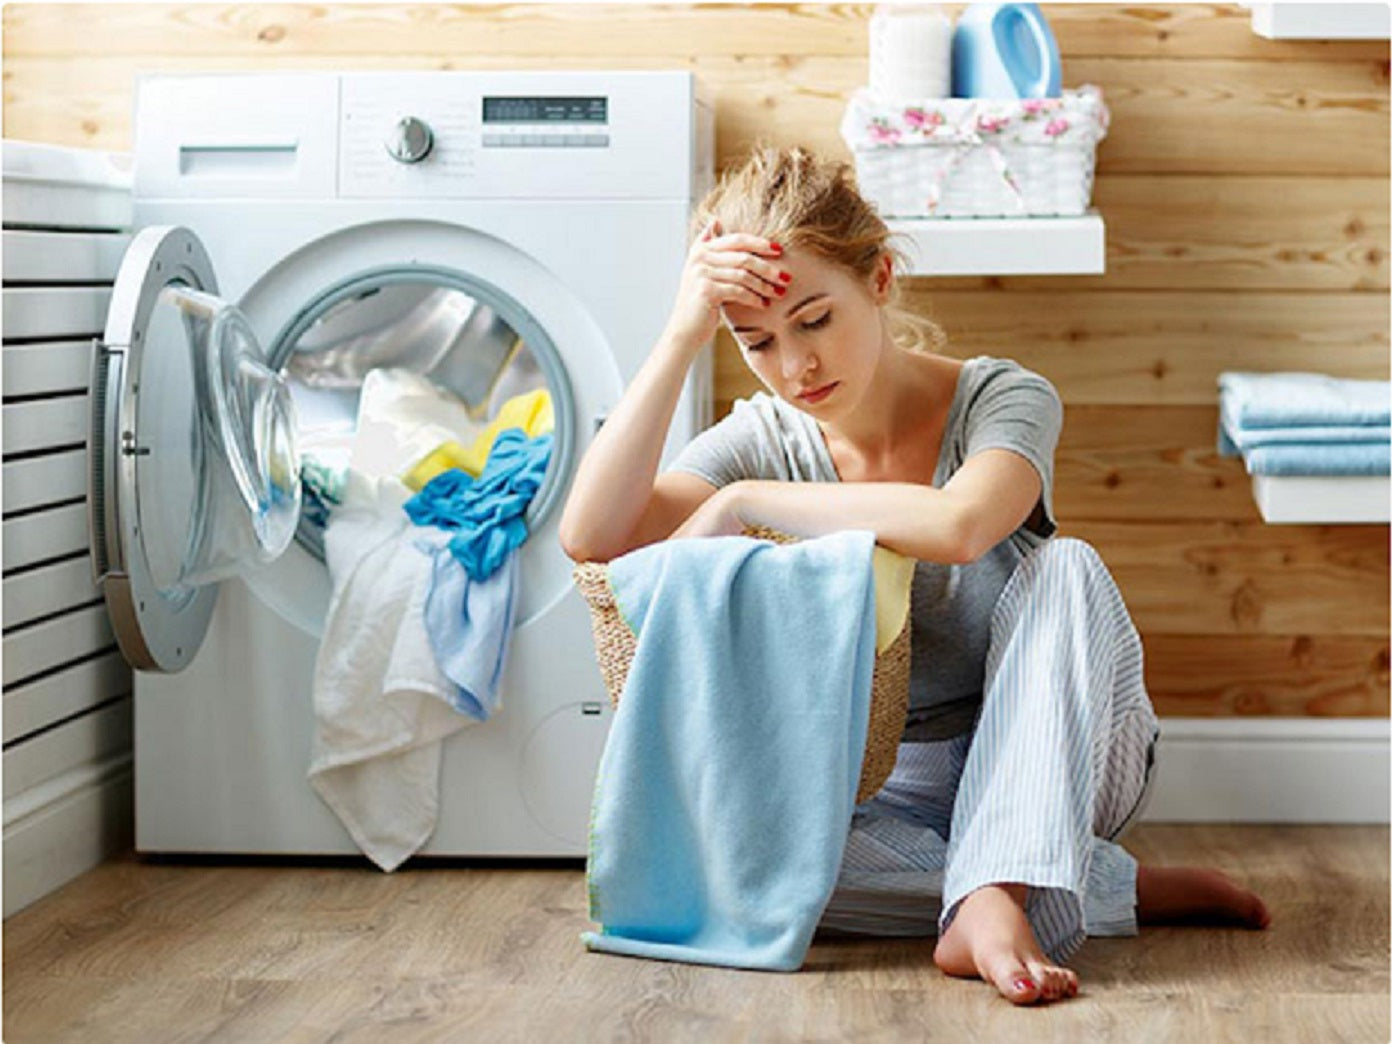 Girl Frustrated with Washing Machine